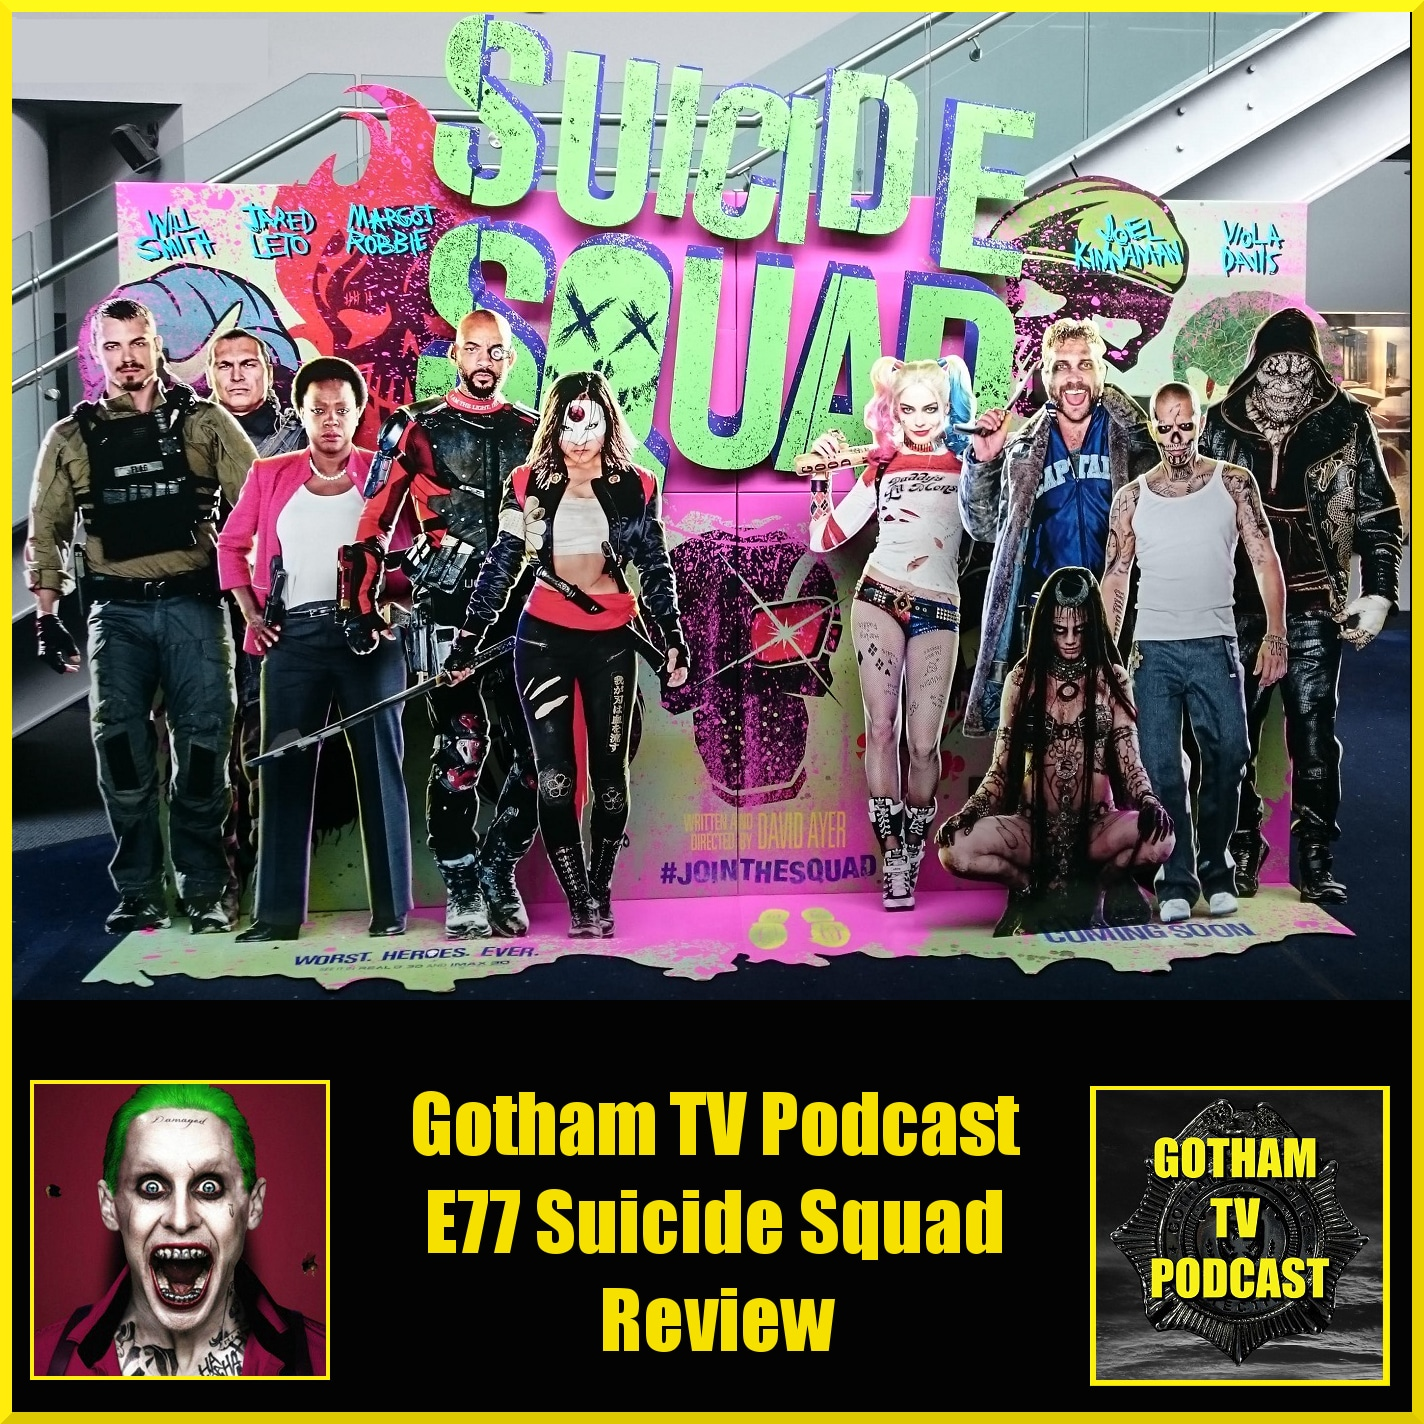 Suicide Squad Review Podcast